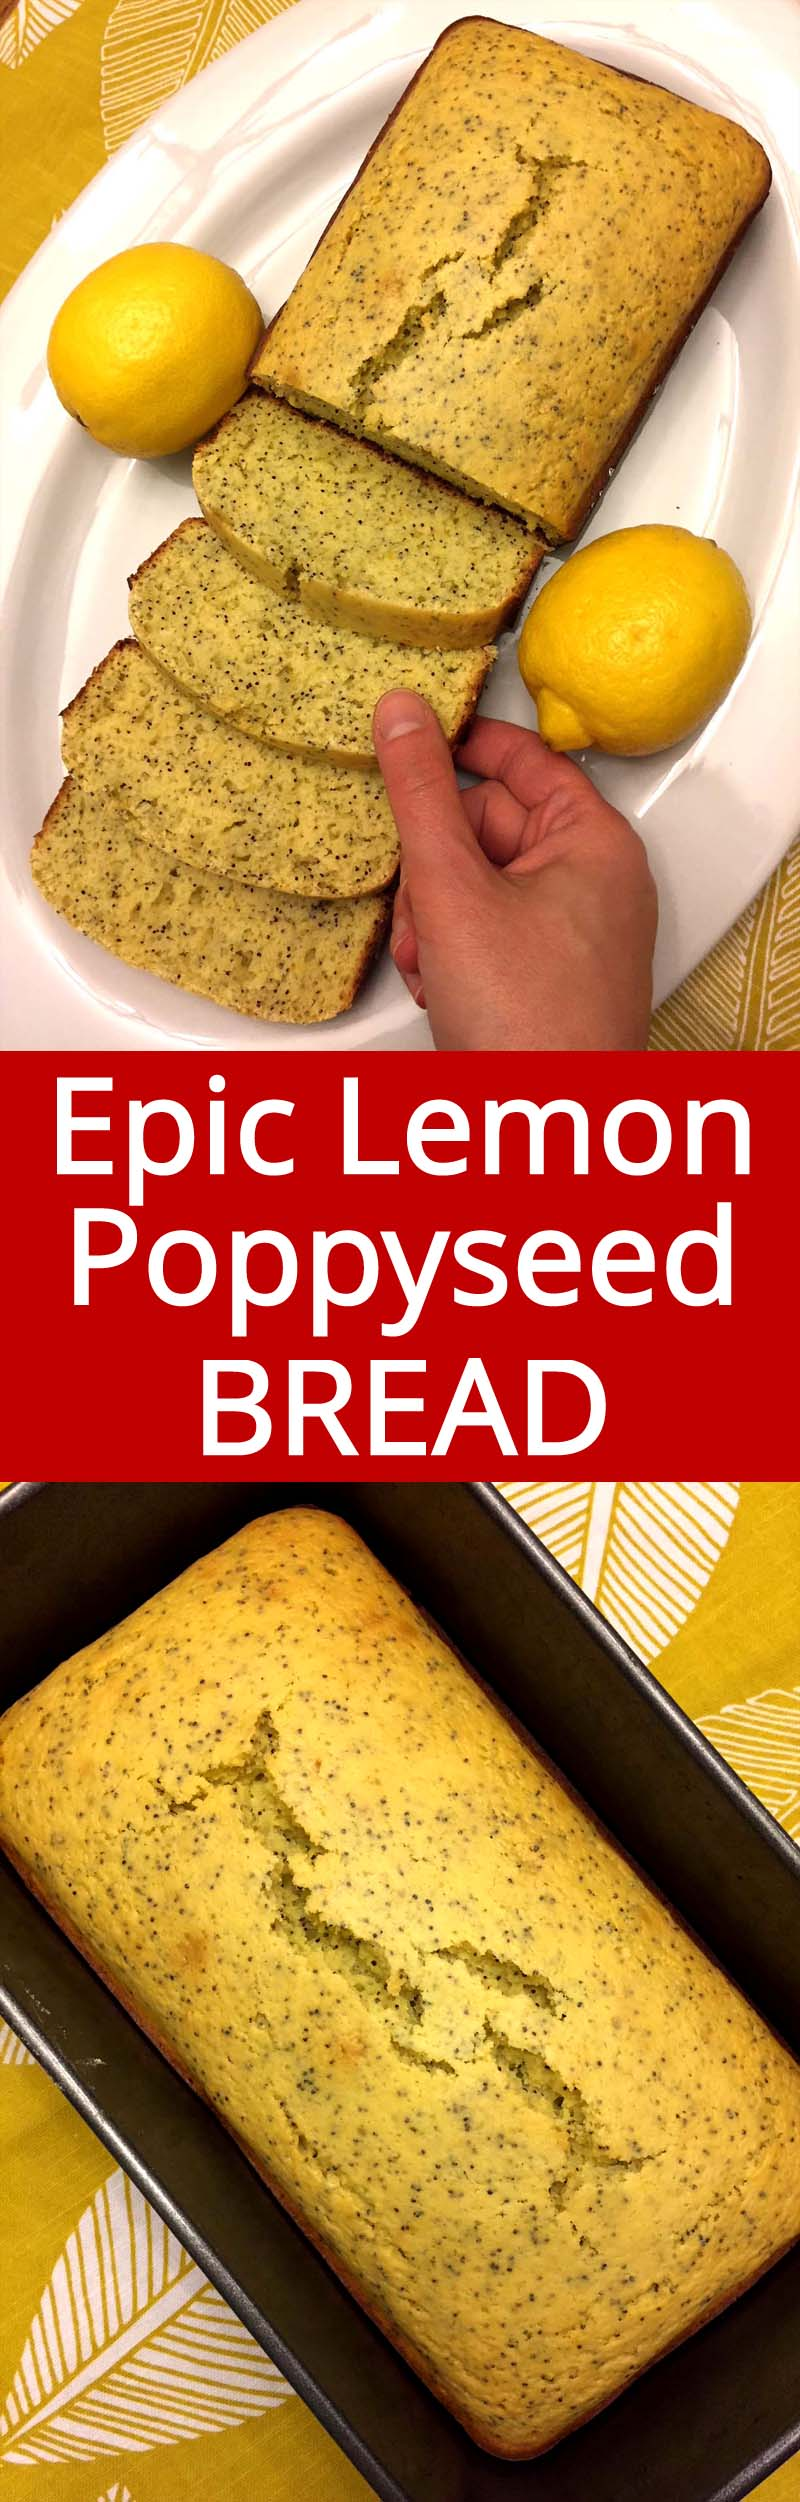 I love this lemon poppyseed bread! This recipe is so easy and so delicious! This is the only lemon poppyseed recipe you'll ever need!